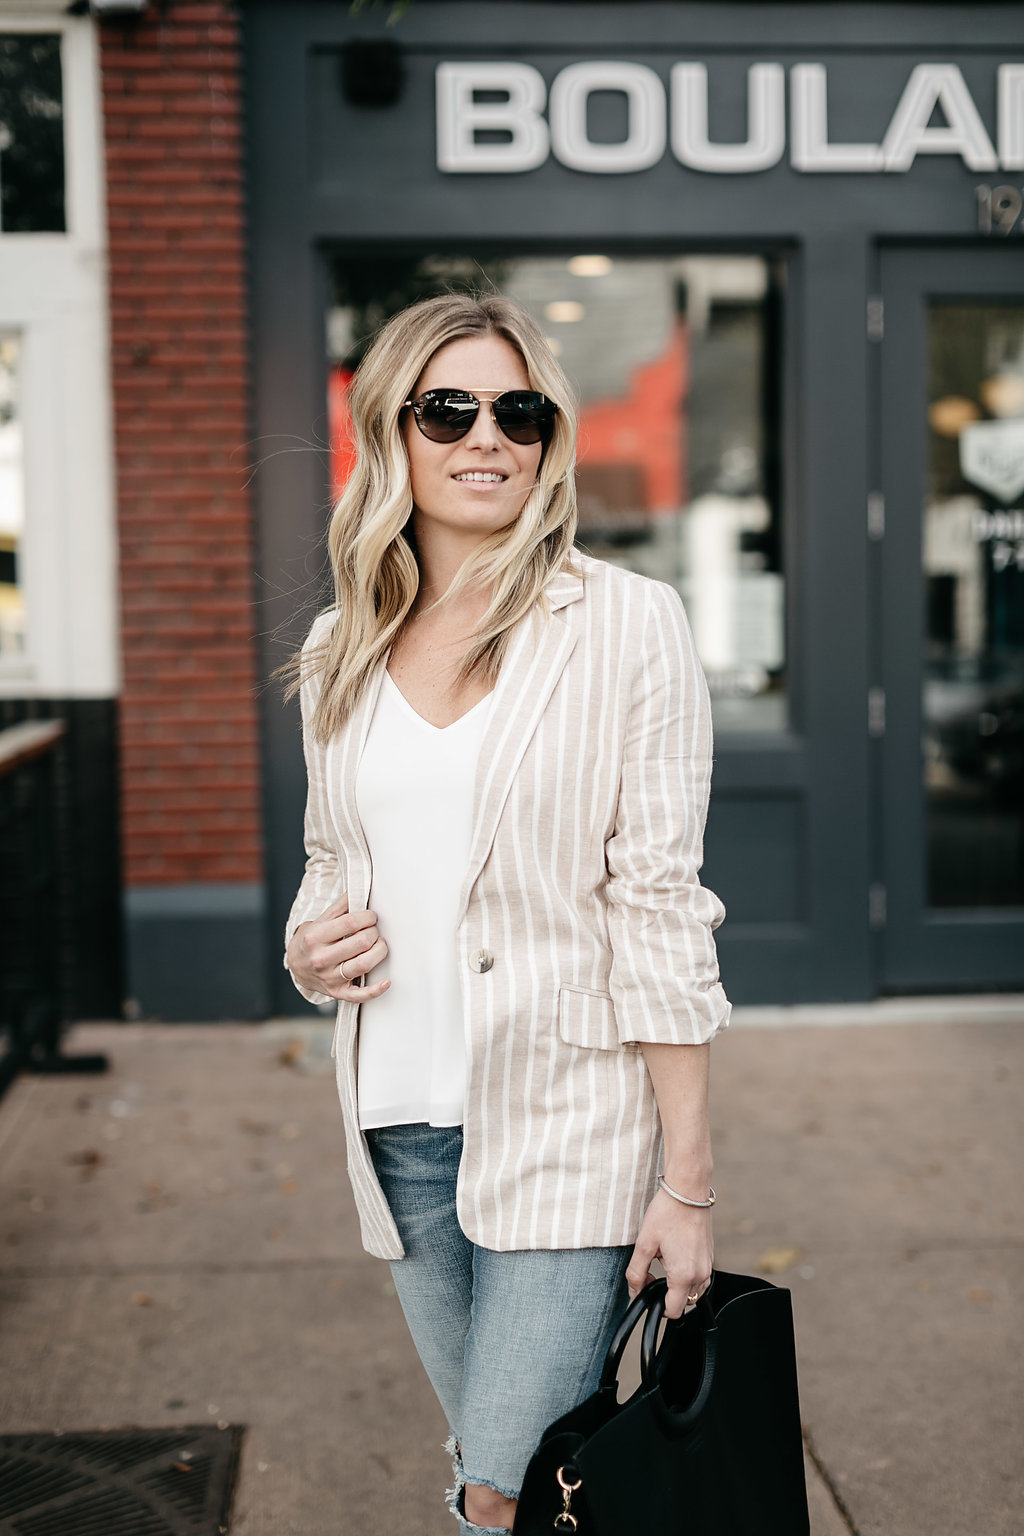 Dallas lifestyle blogger Brooke Burnett